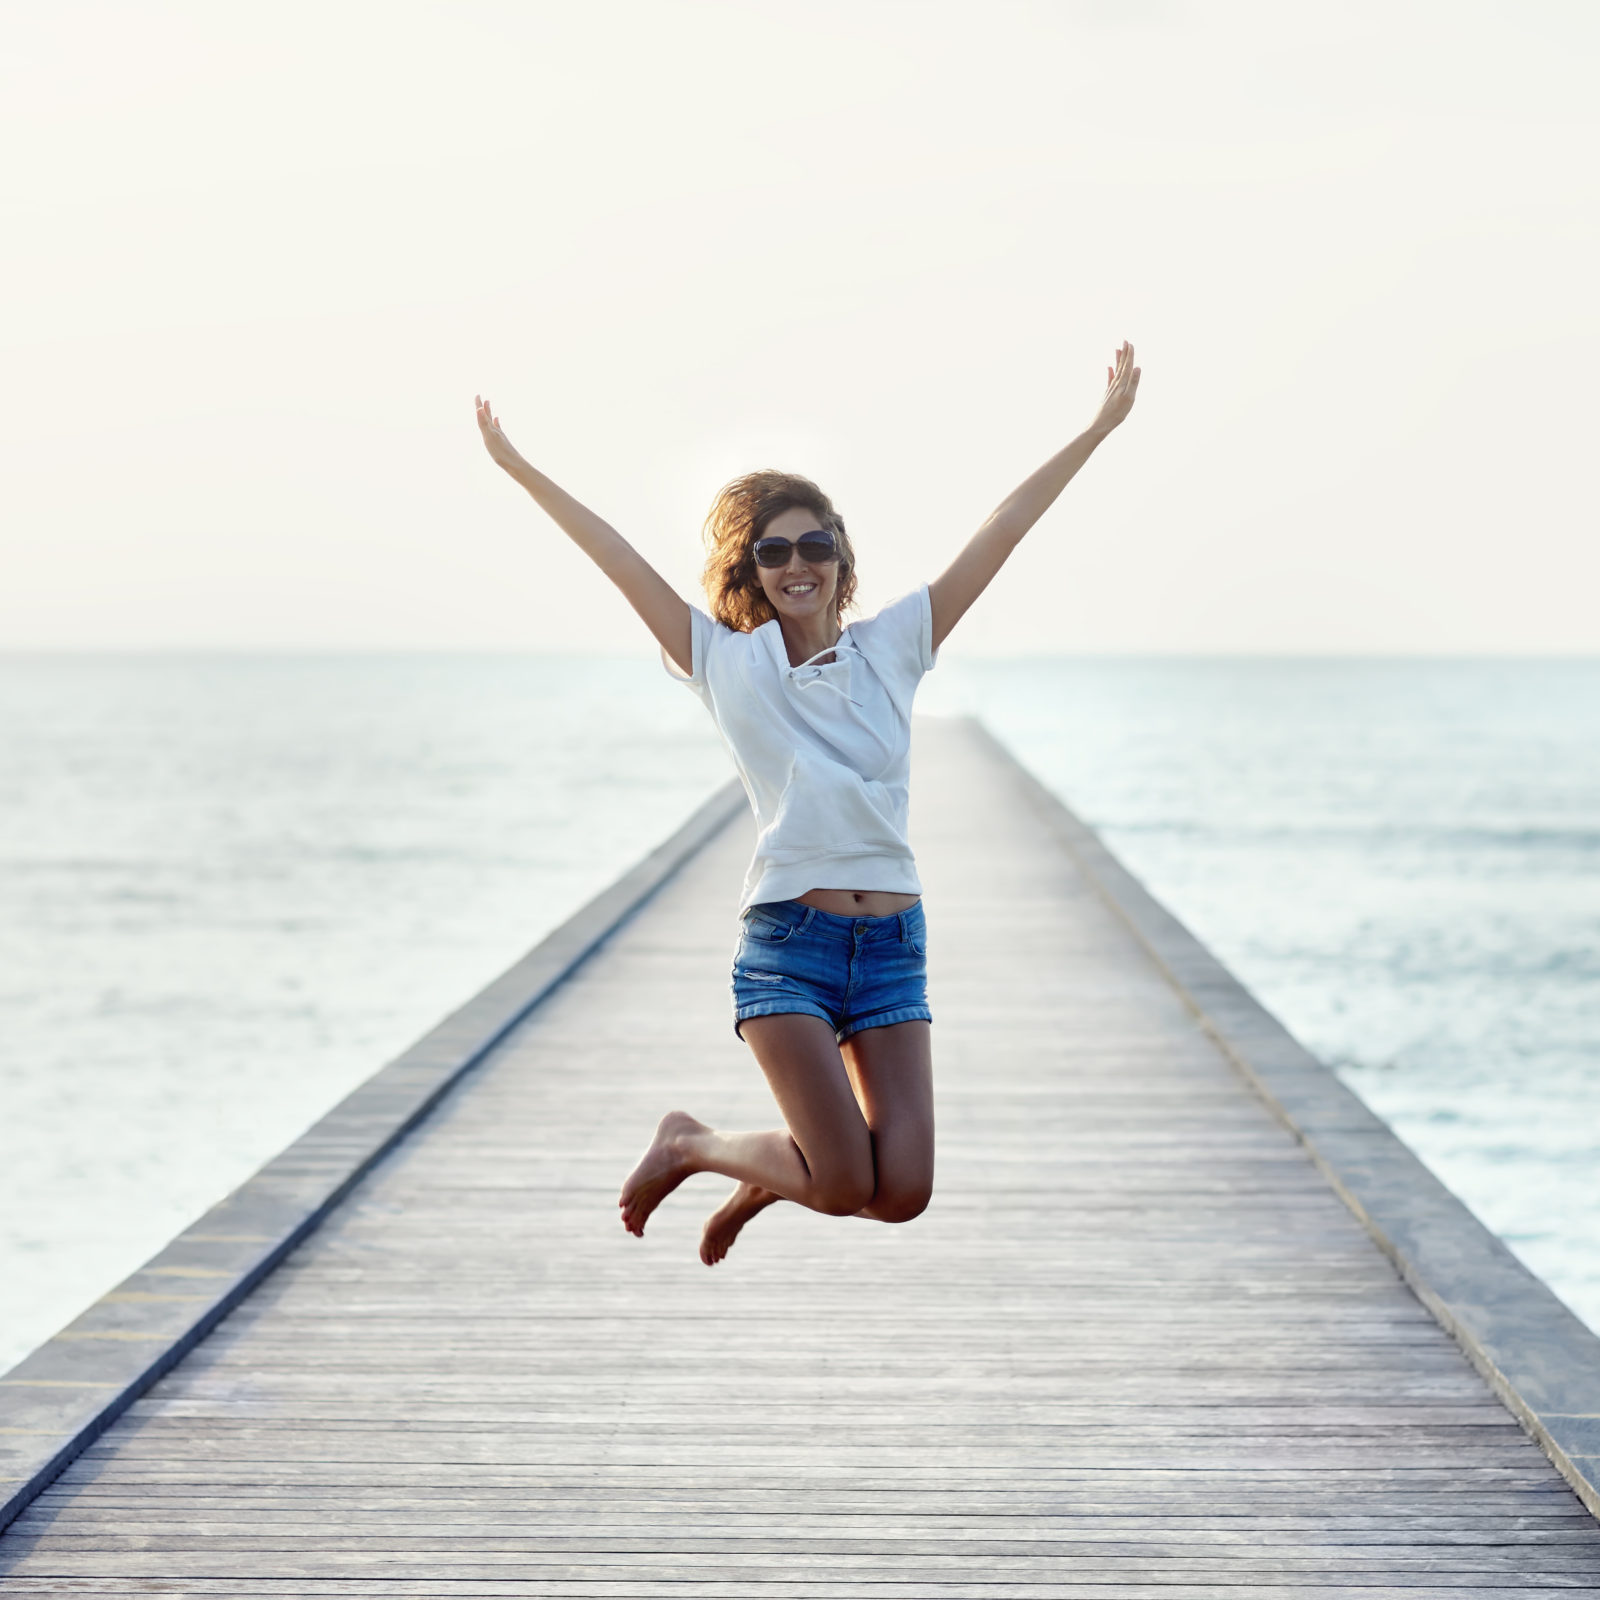 Happy jumping girl on the pier. Freedom concept